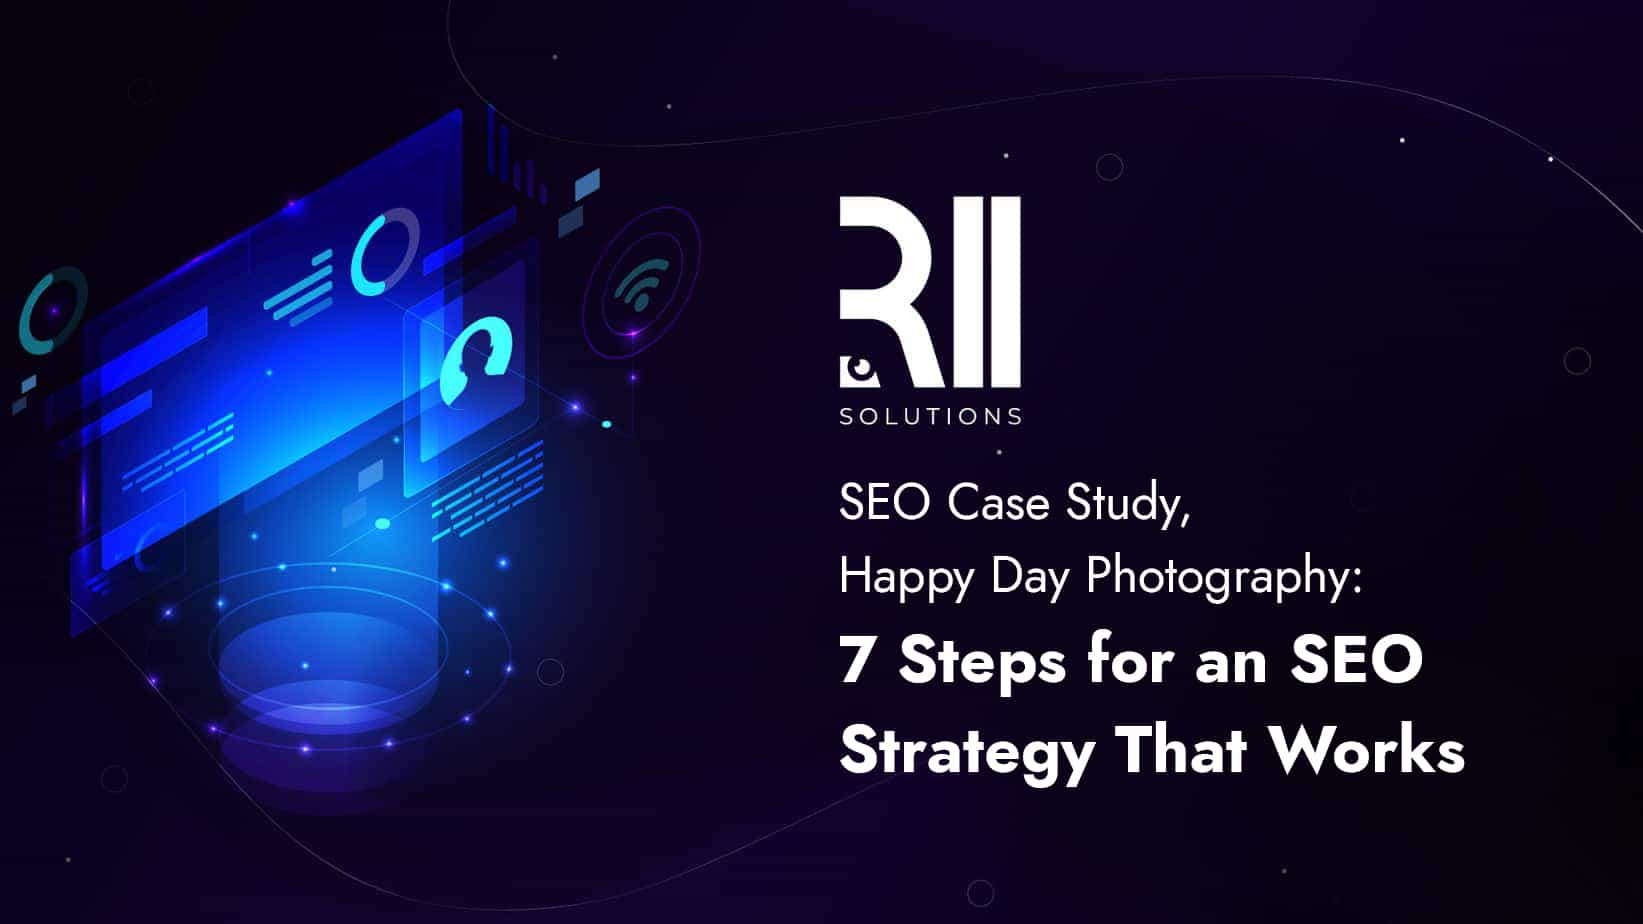 SEO Case-Study, Happy Day Photography: 7 Steps for an SEO Strategy that Works